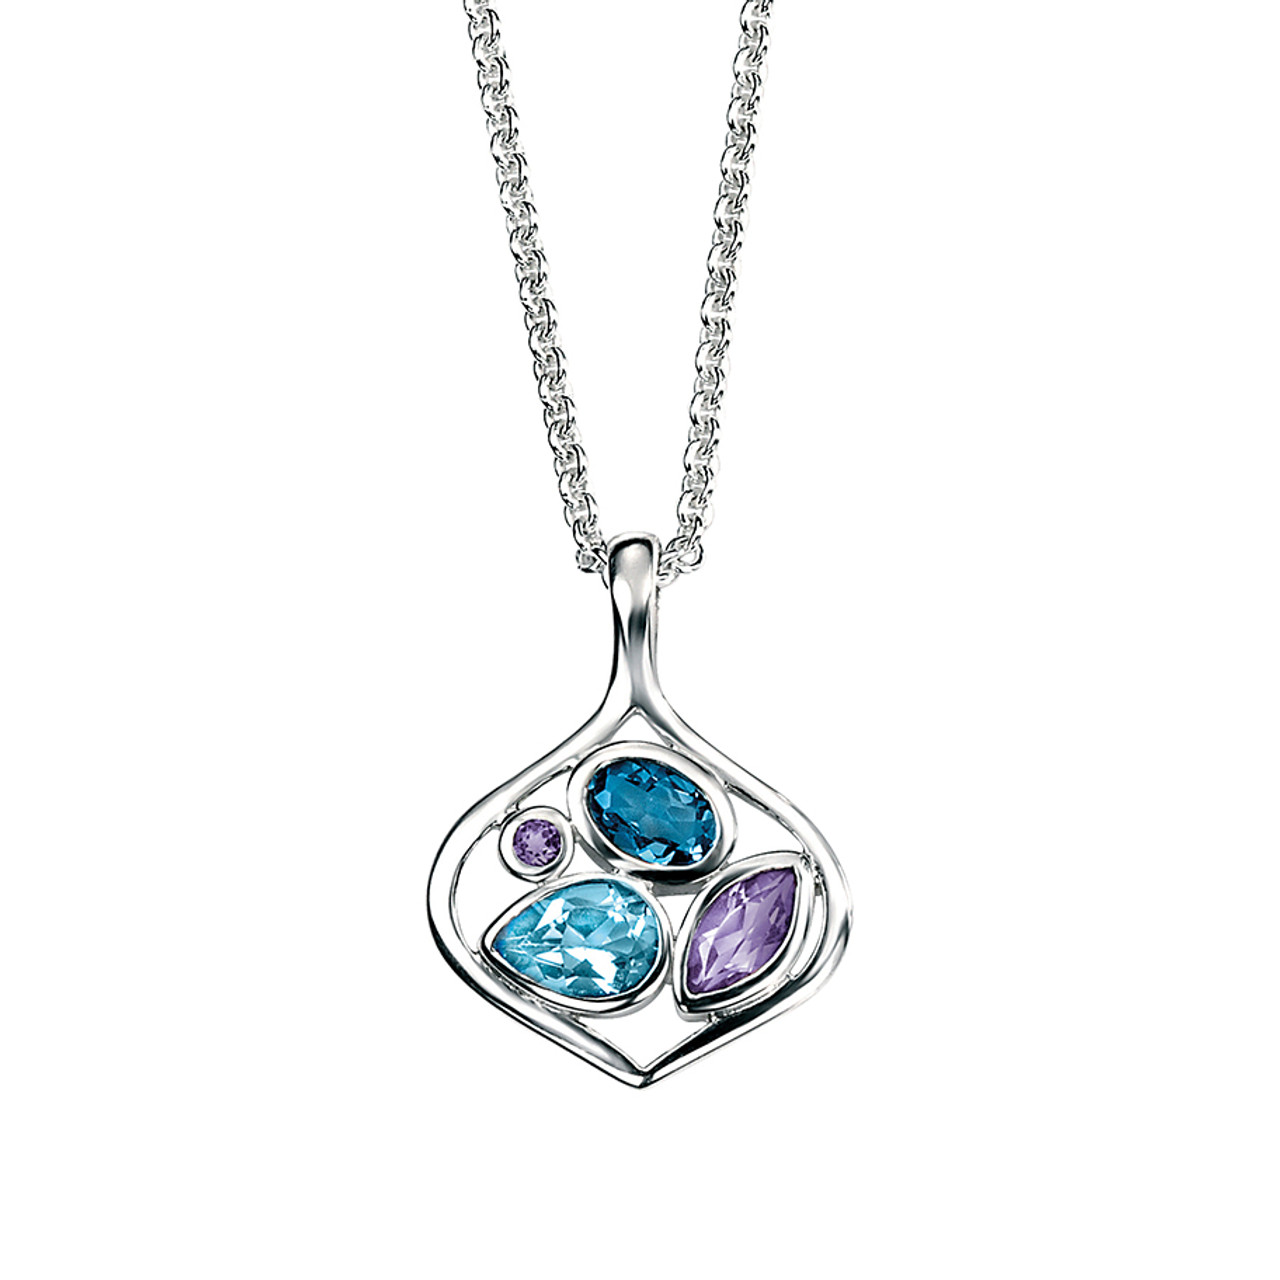 Silver Amethyst & Blue Topaz open Pendant on Chain